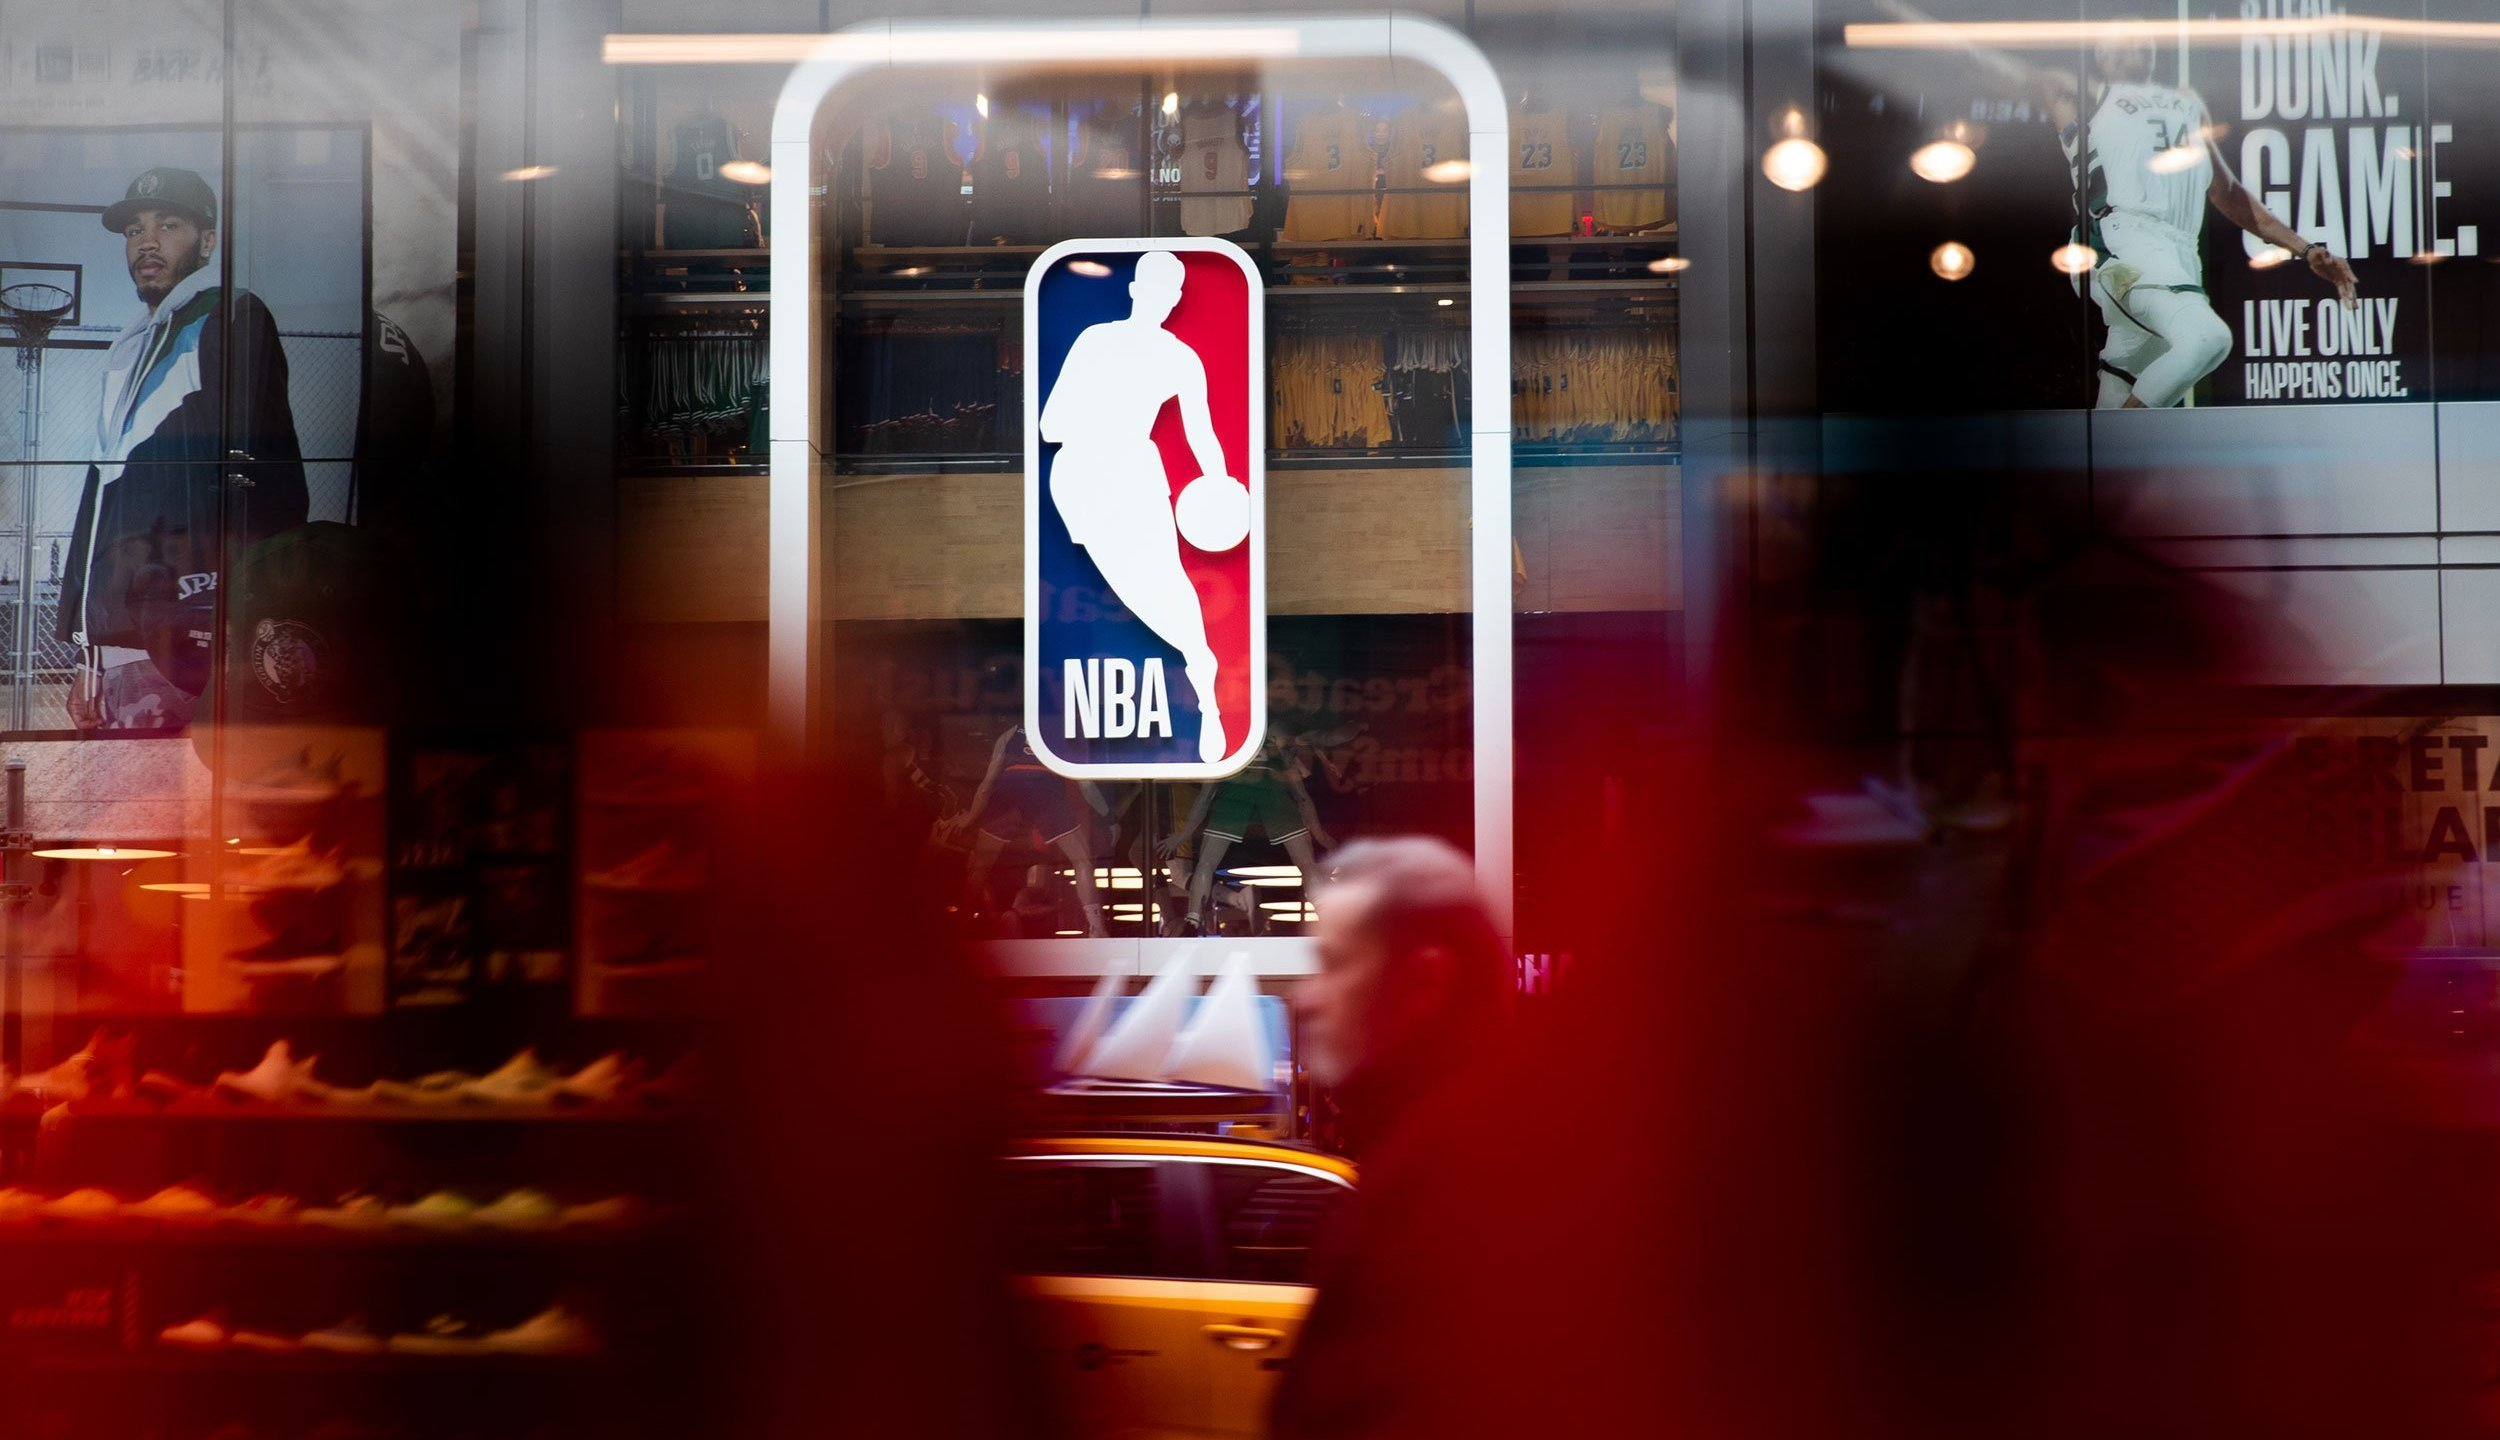 The NBA logo is seen in an undated photo. (Jenah Moon/Getty Images)